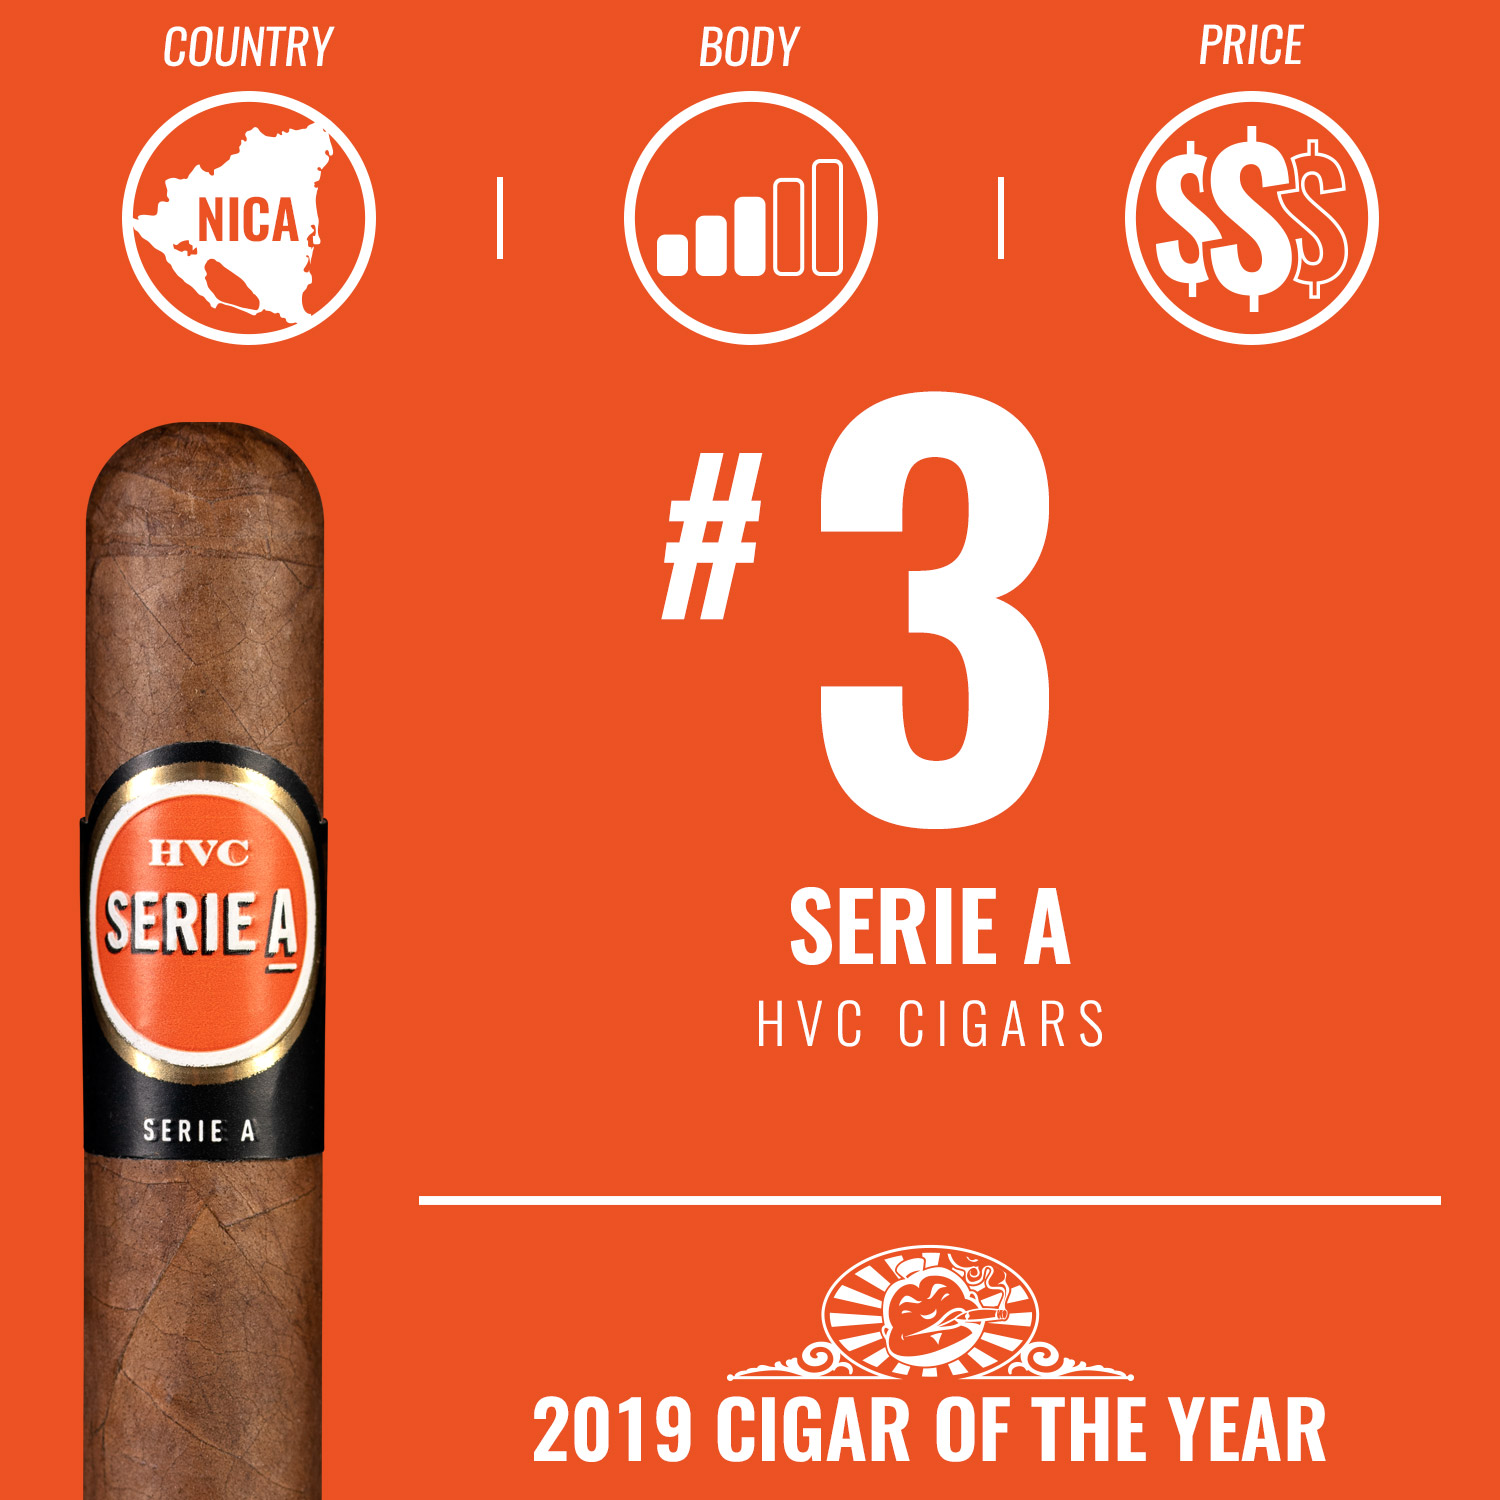 HVC Serie A No. 3 Cigar of the Year 2019